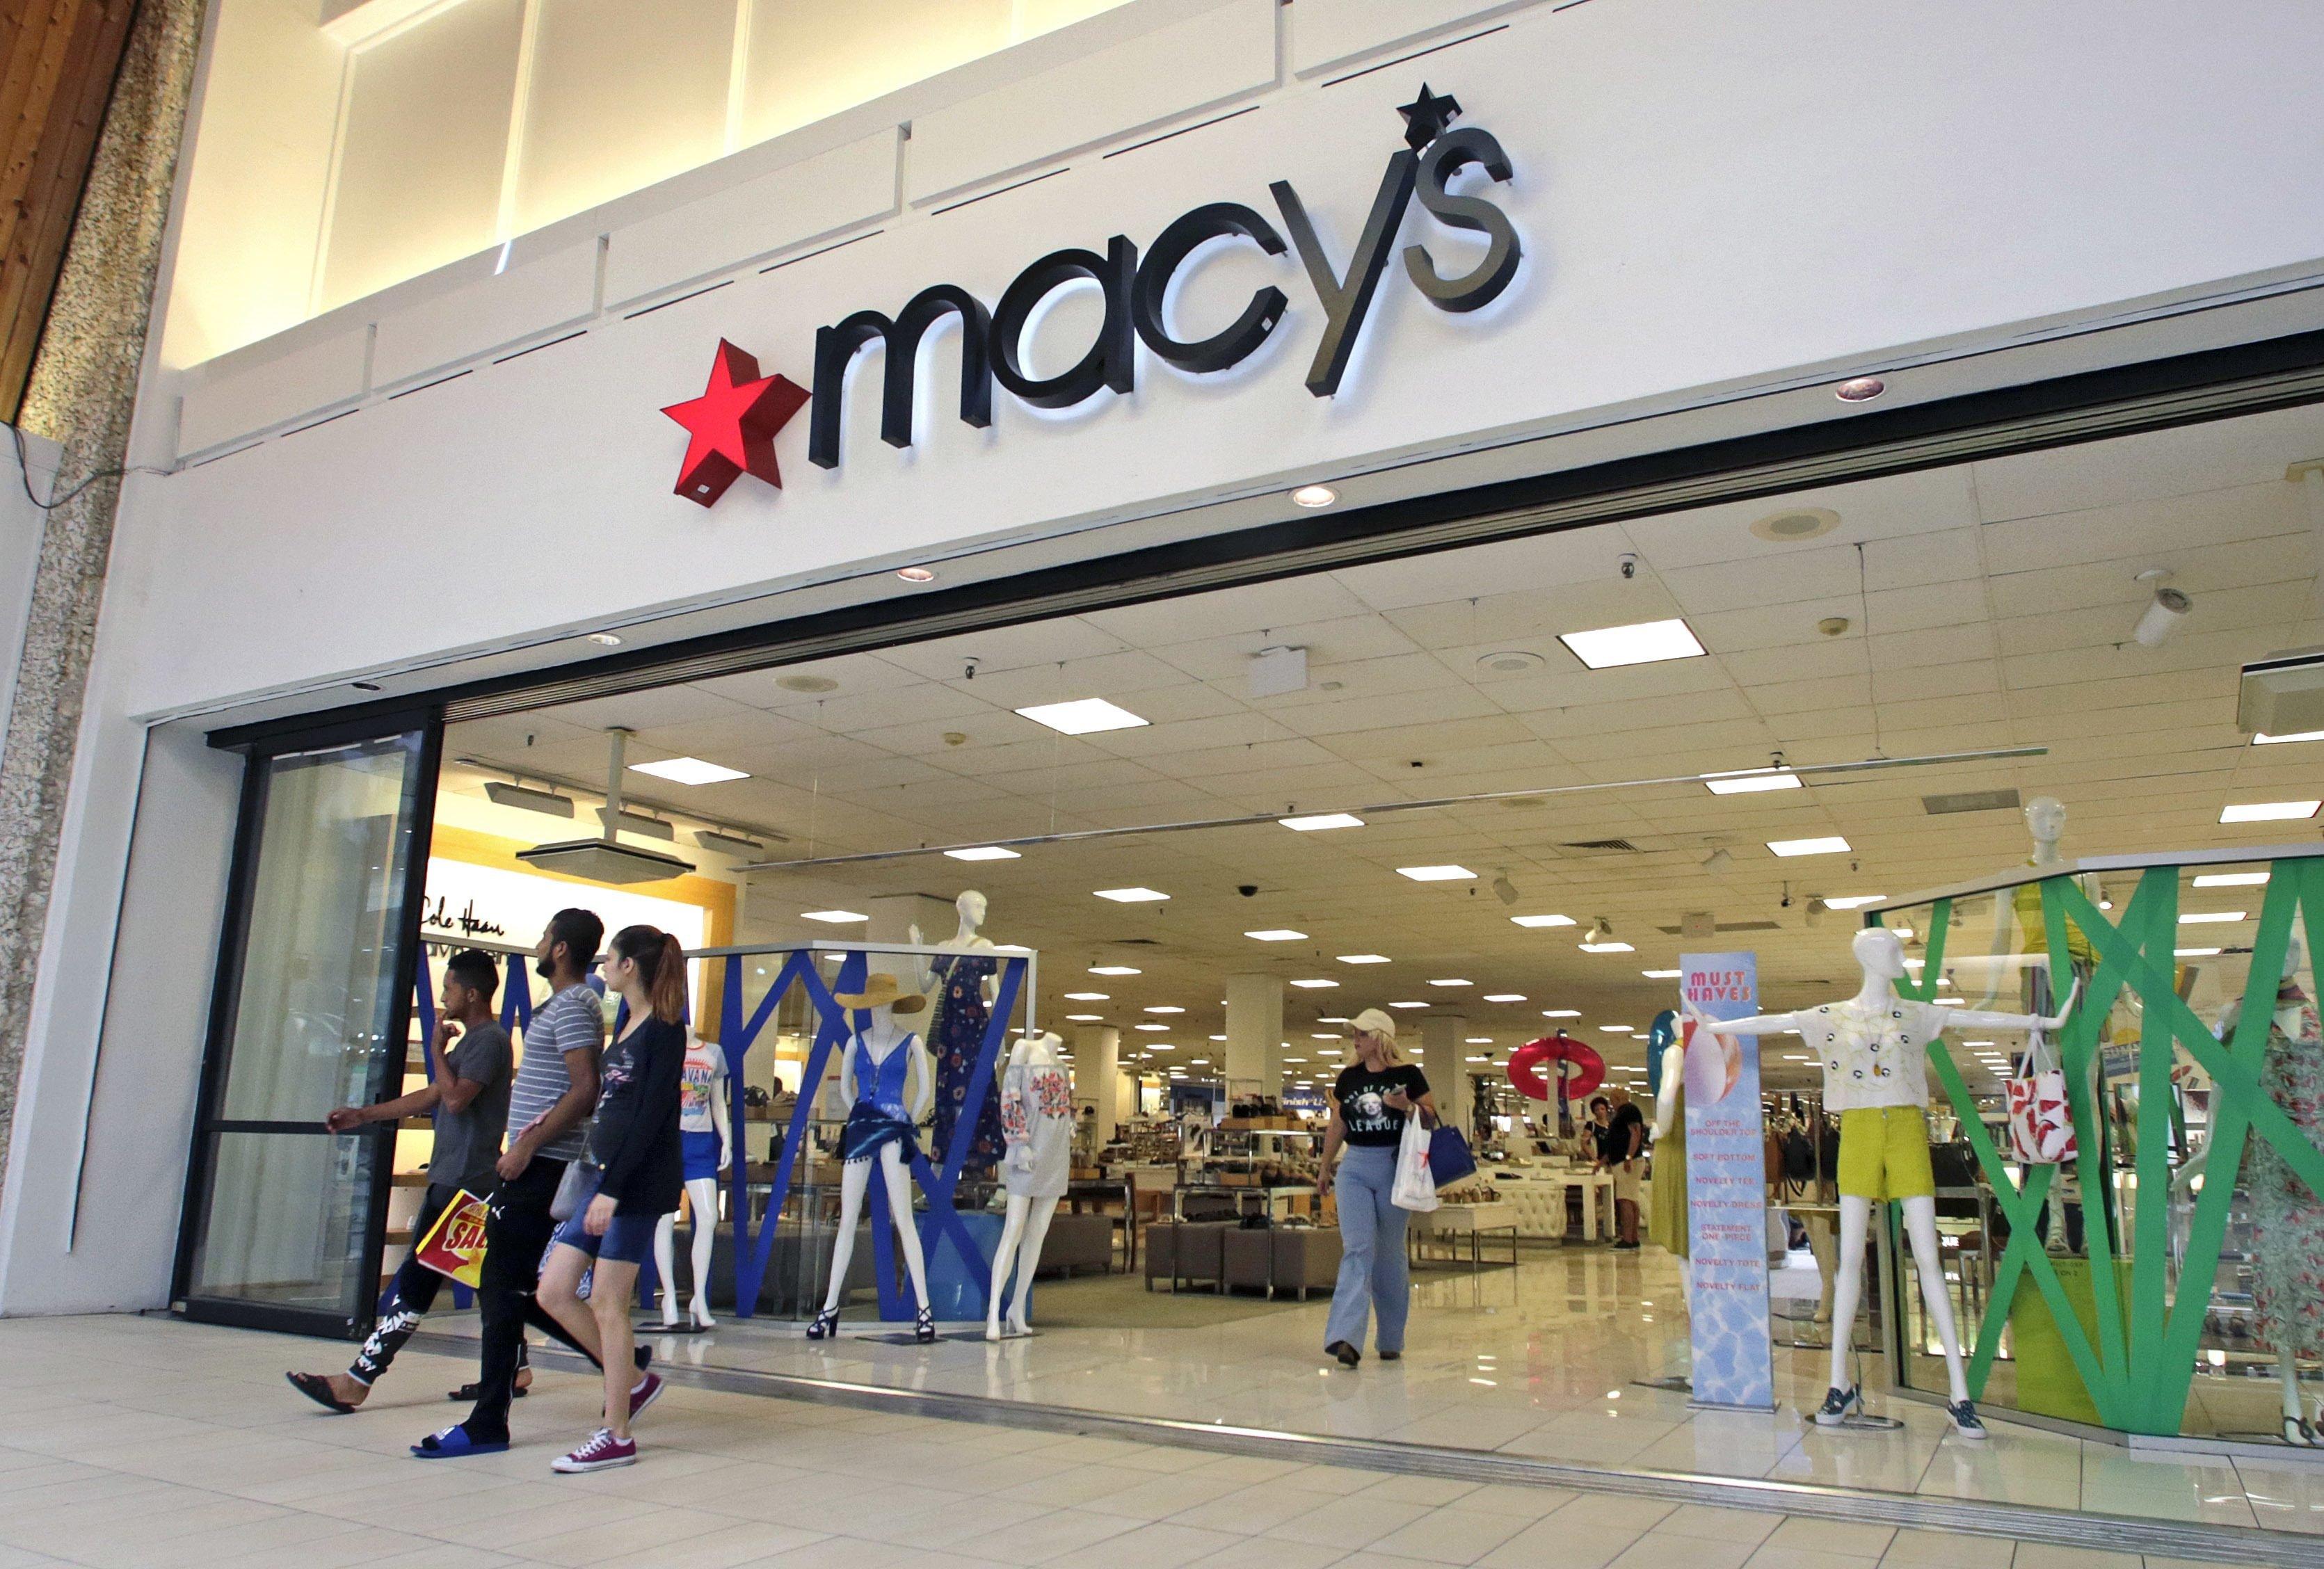 People walk out of a Macy's department store in Hialeah, Fla.